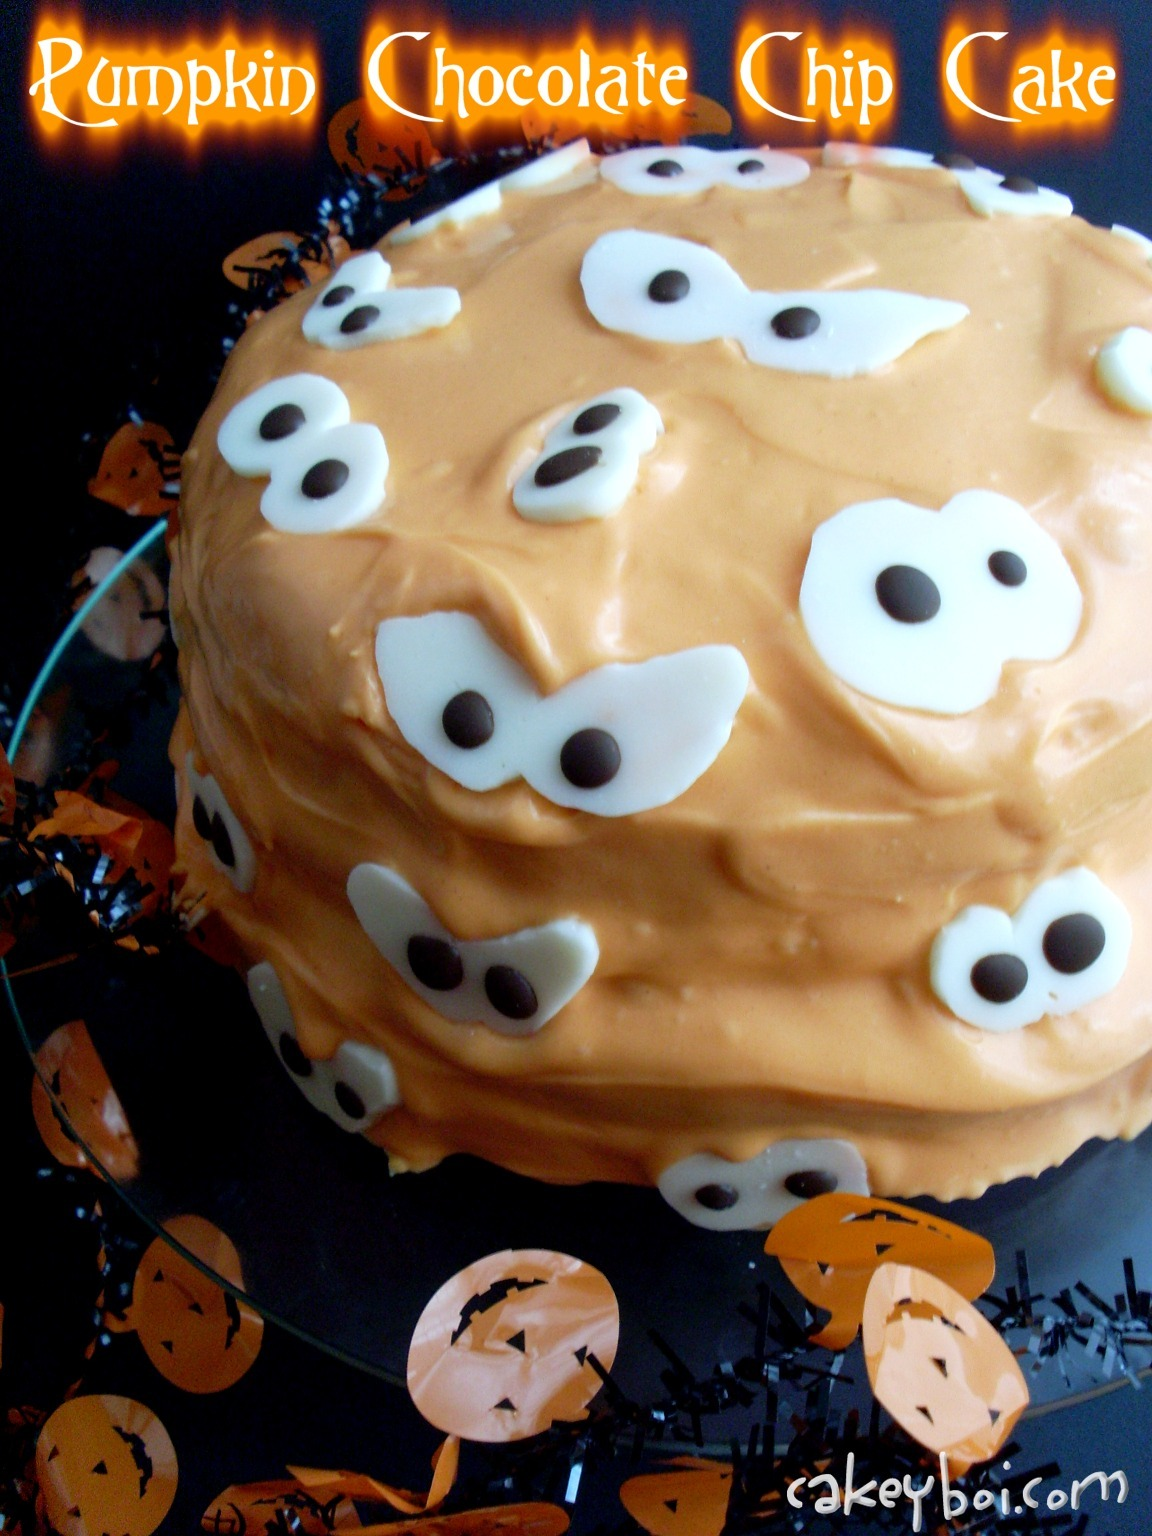 Pumpkin Chocolate Chip Cake w/ Cinnamon Cream Cheese Frosting